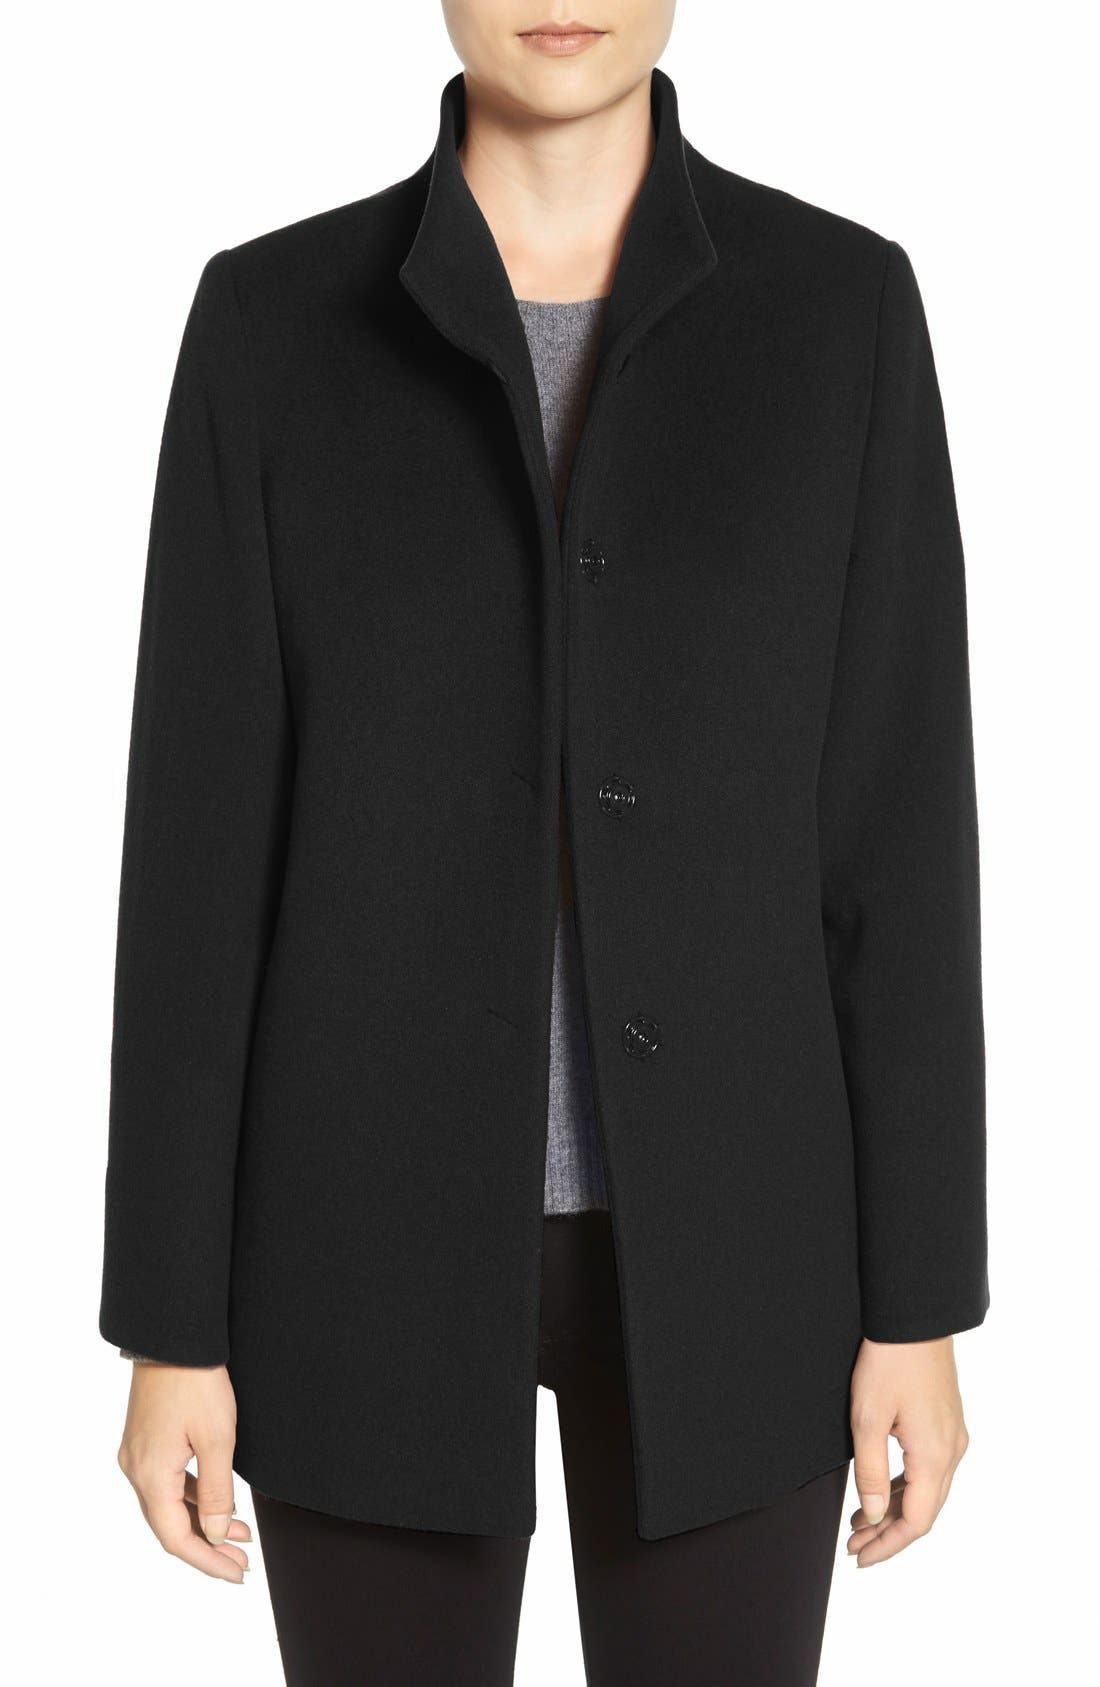 Alternate Image 1 Selected - Cinzia Rocca DUE Stand Collar Wool Blend Coat (Petite)